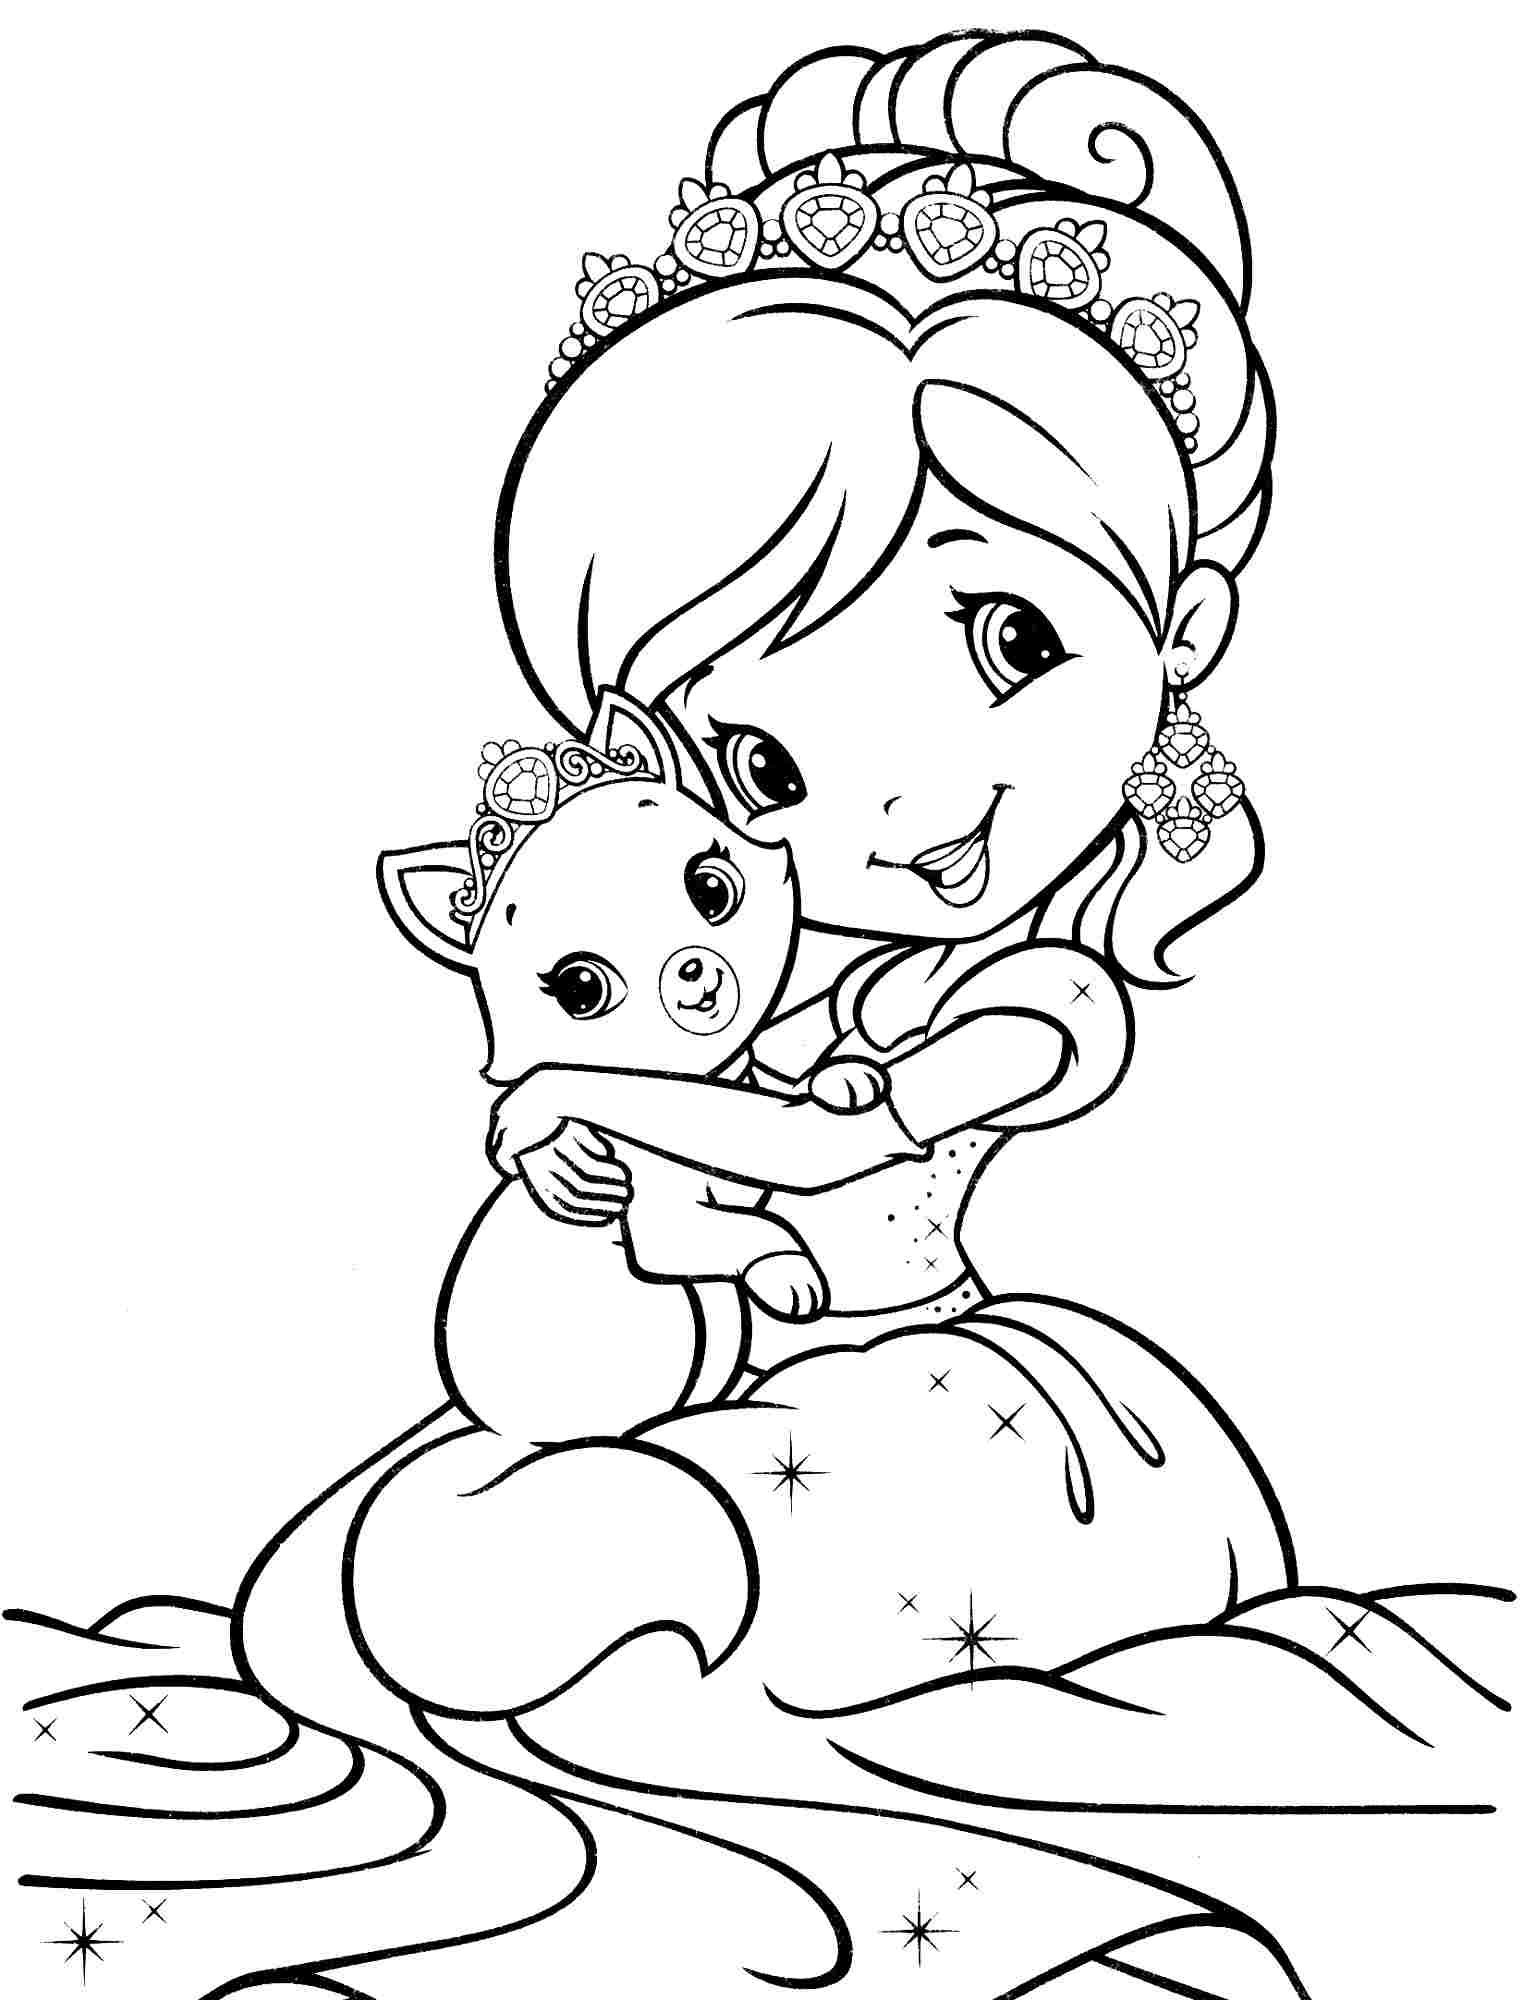 60-cartoon-strawberry-shortcake-coloring-pages-printable.jpg (1523 ...